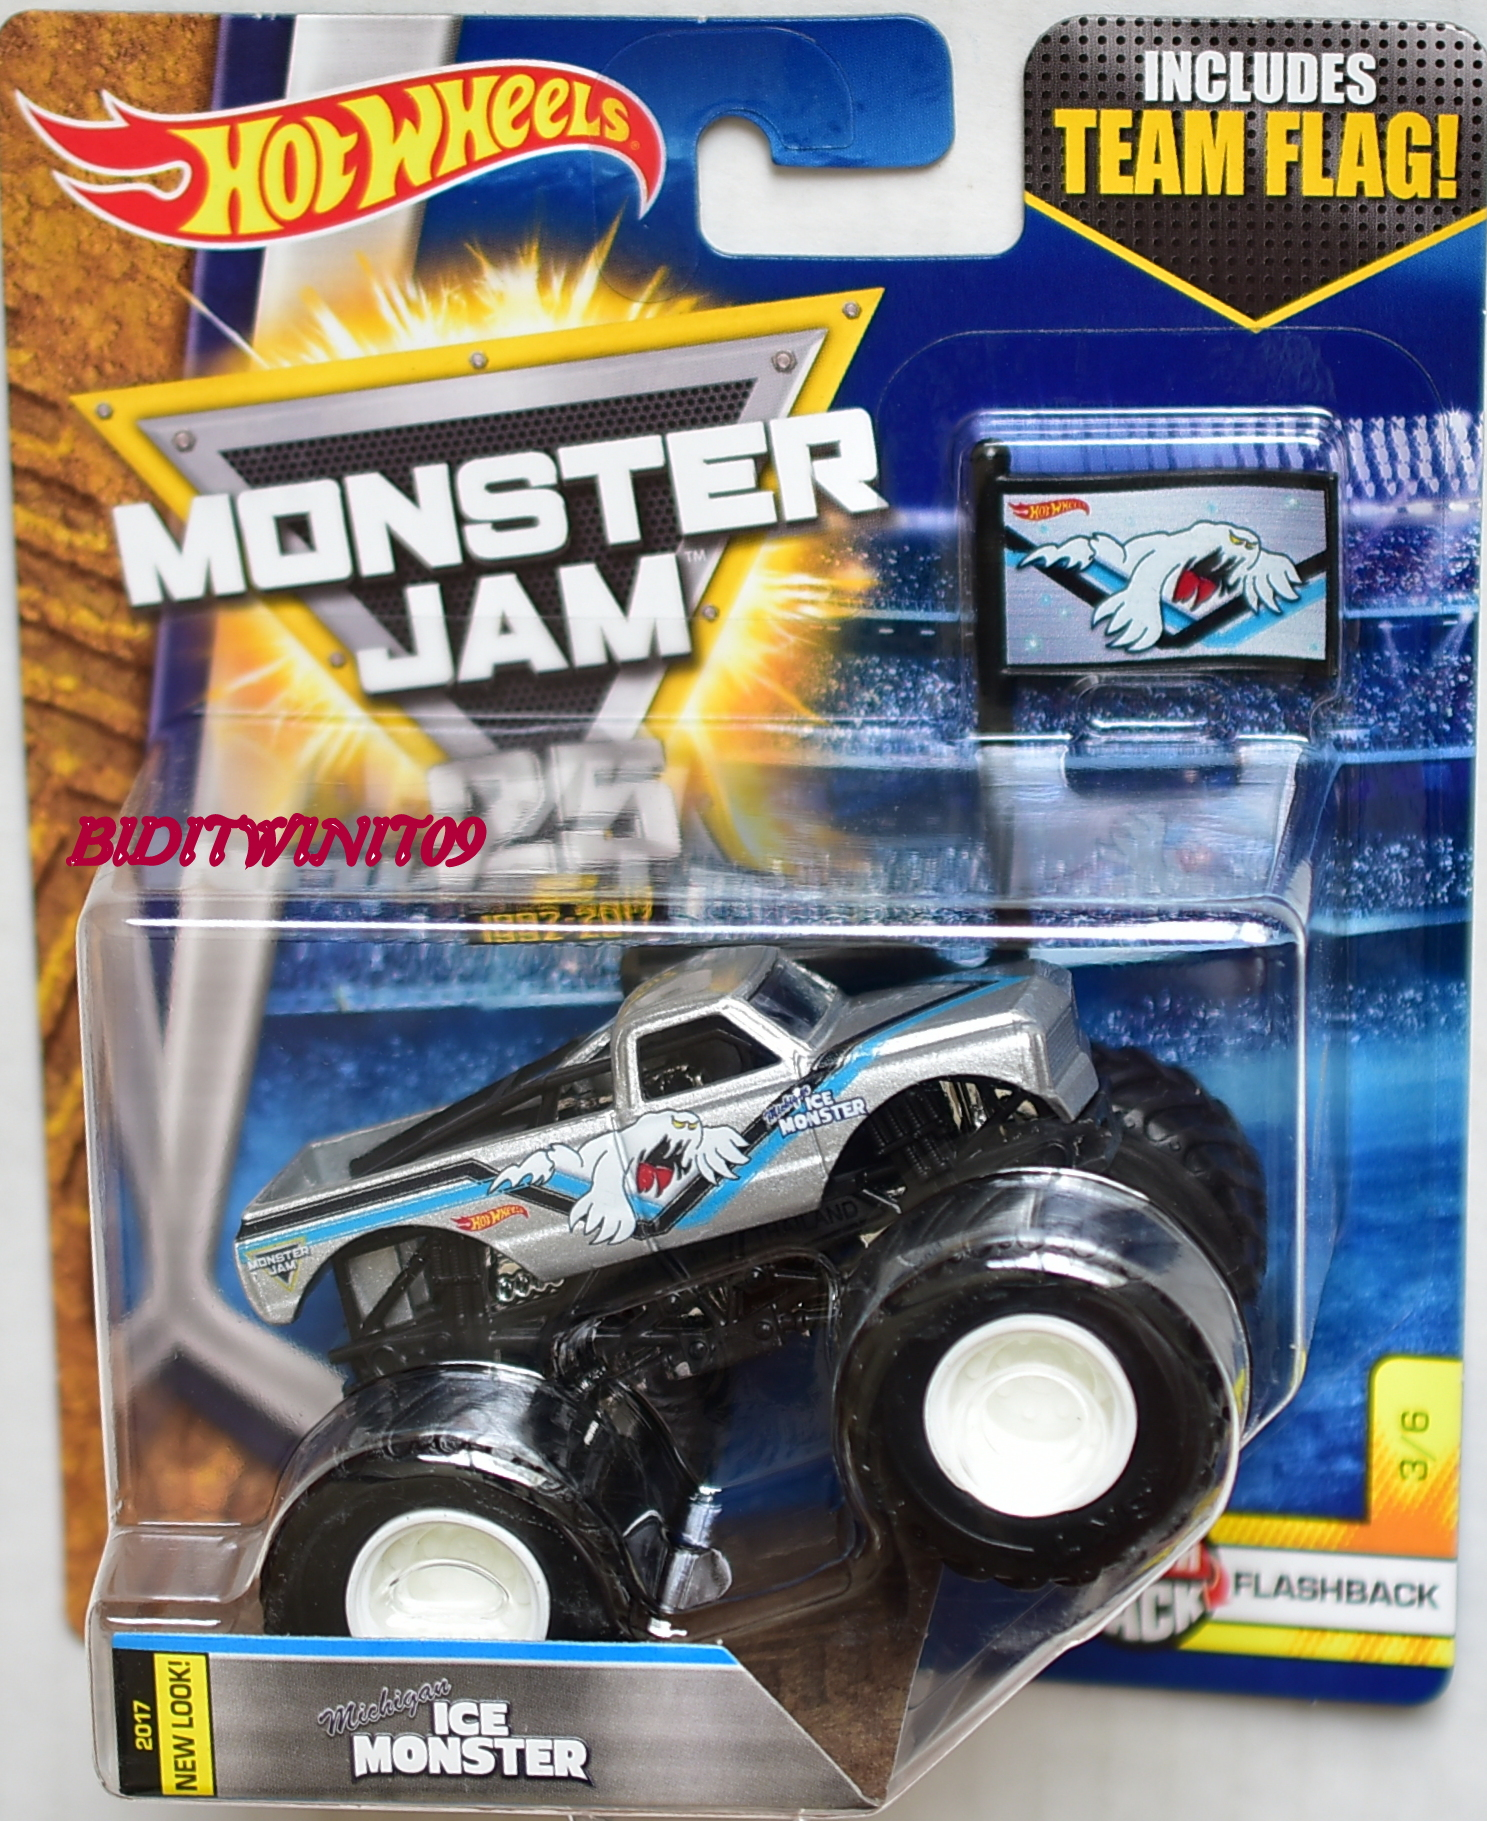 HOT WHEELS 2017 MONSTER JAM INCLUDES TEAM FLAG MICHIGAN ICE MONSTER NEW LOOK